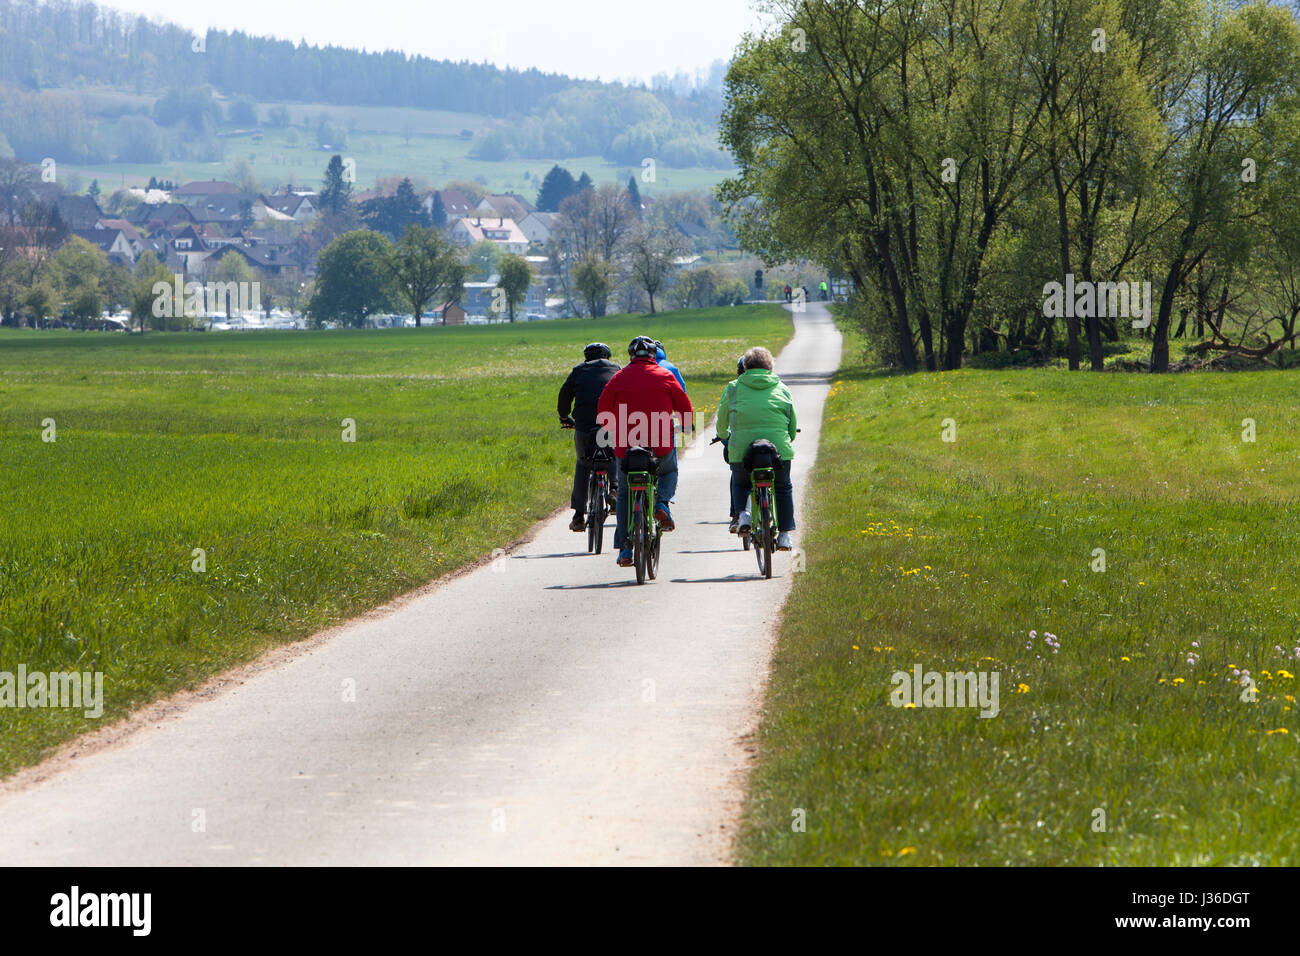 The Weser bikeway R1 between the villages of Gewissenruh and Gieselwerder, along the River Weser, Upper Weser Valley, - Stock Image